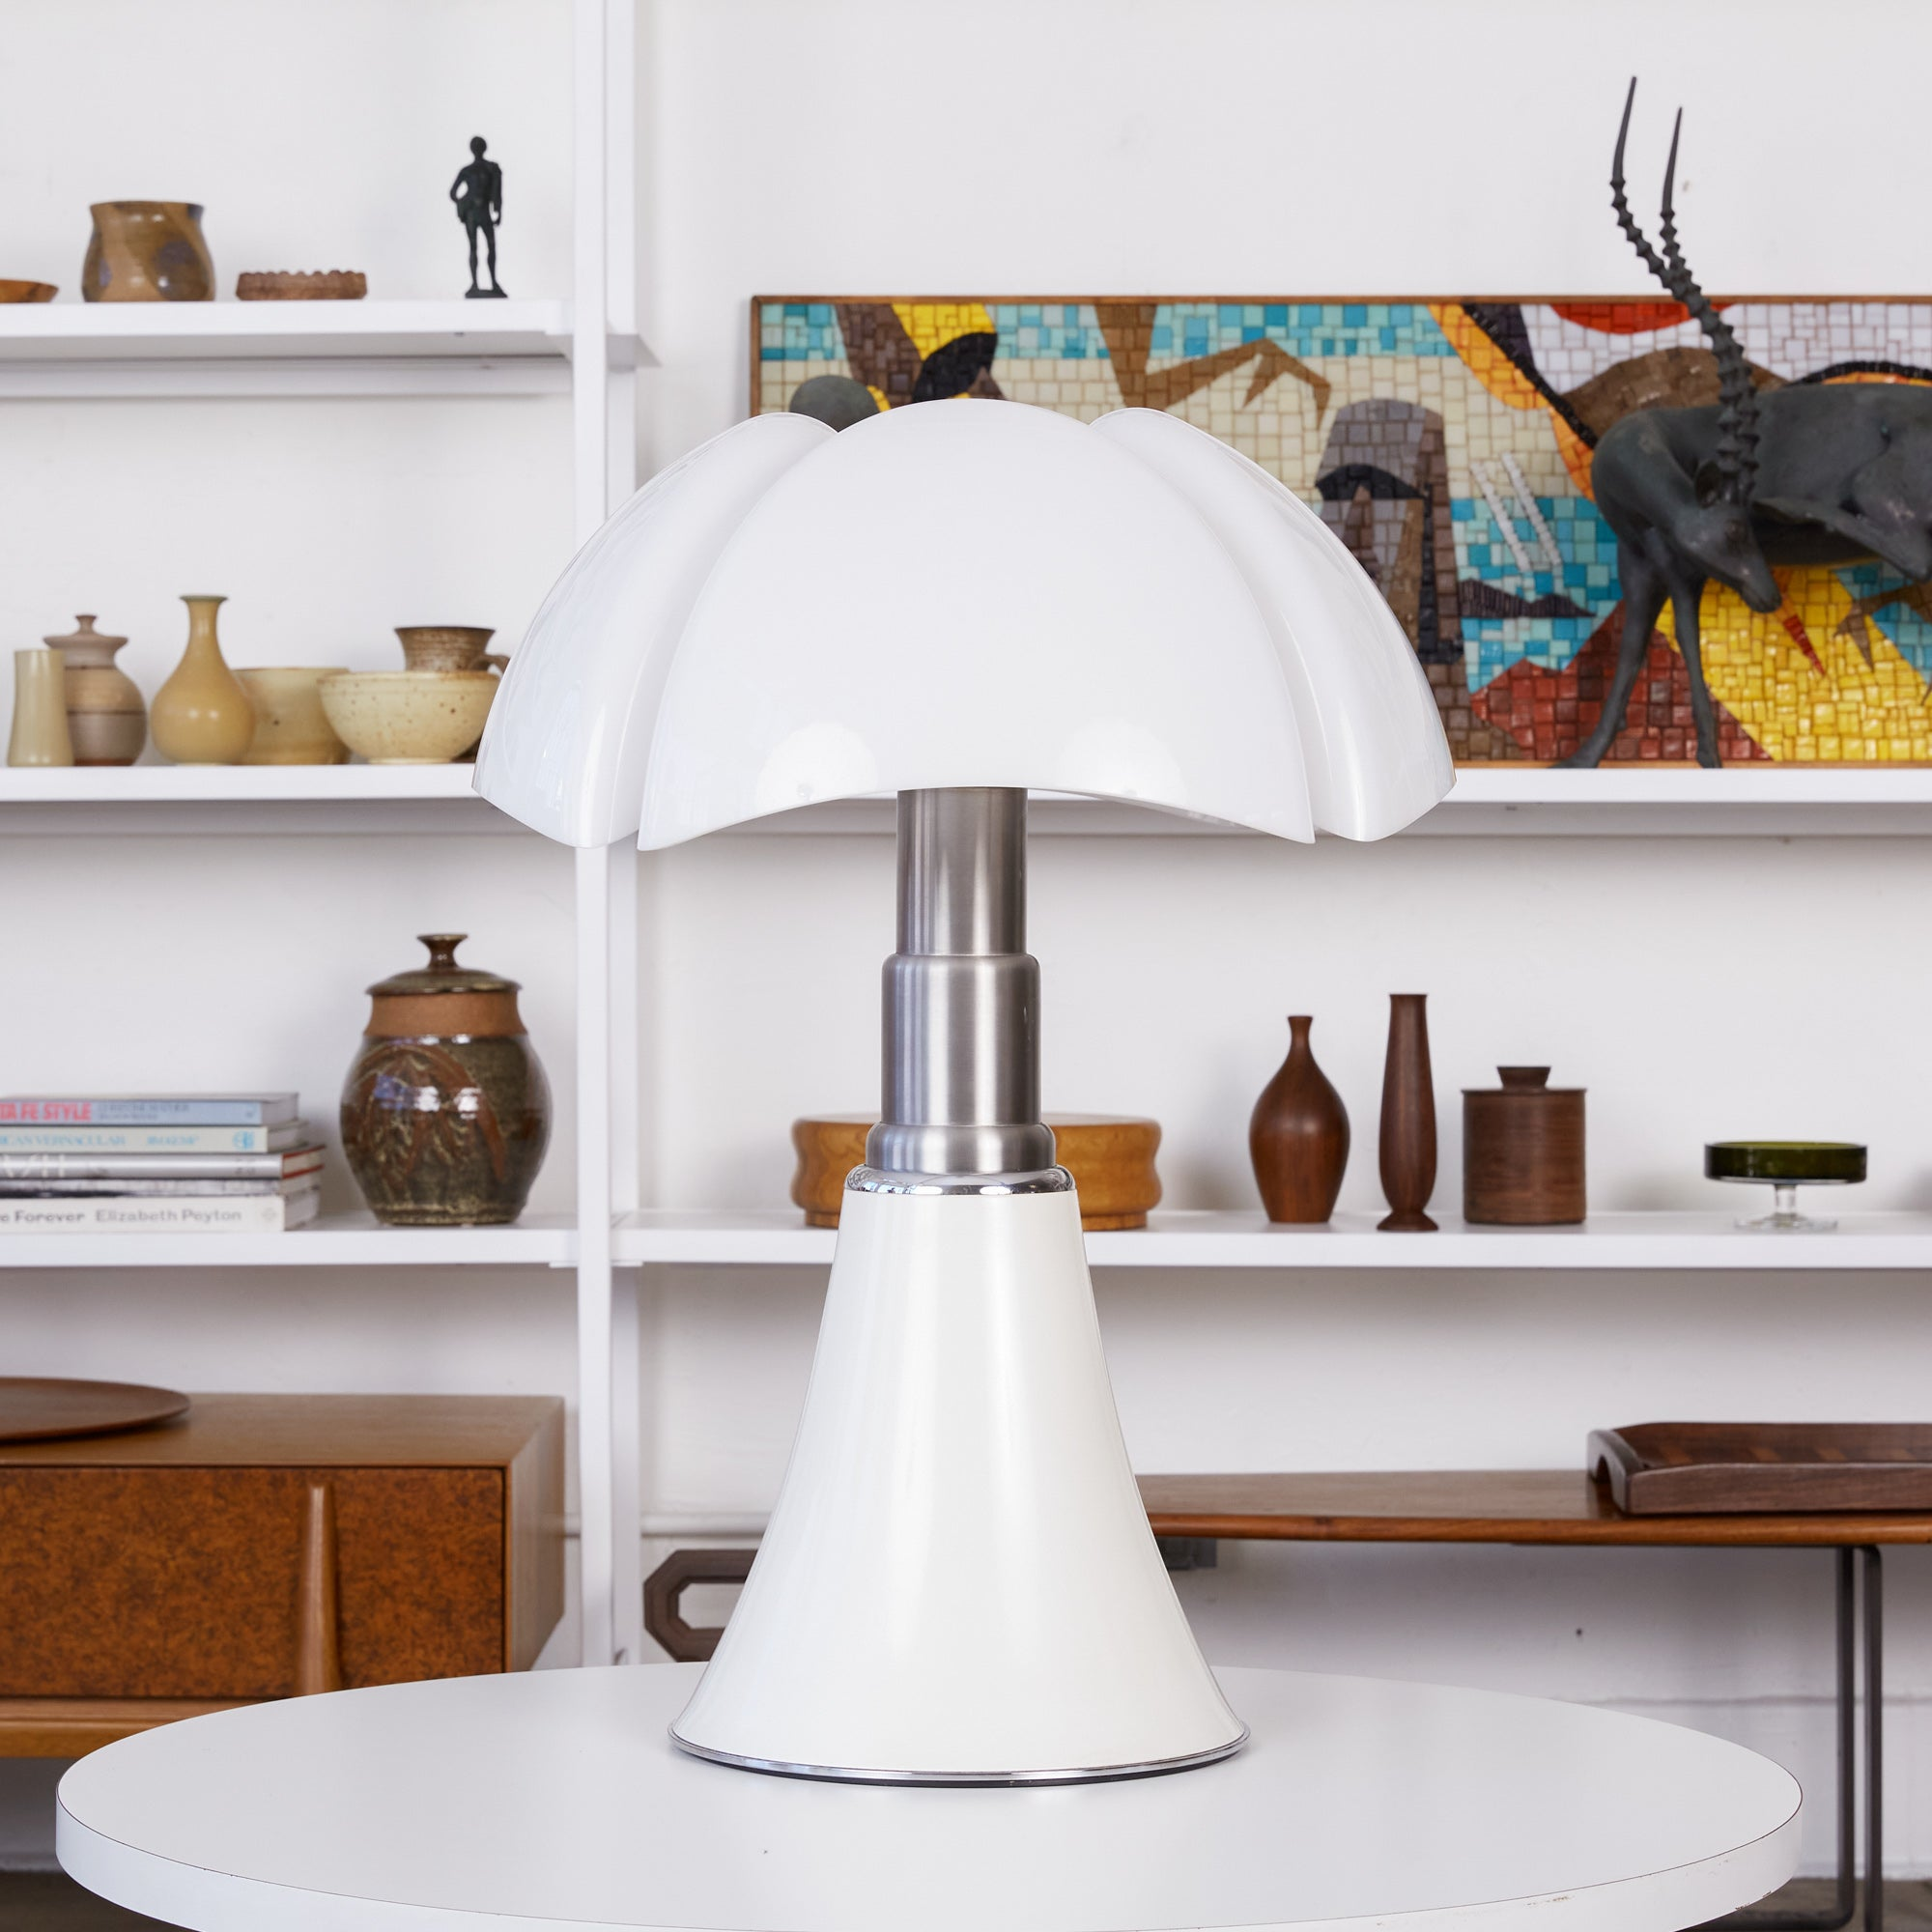 White Pipistrello Table Lamp by Gae Aulenti